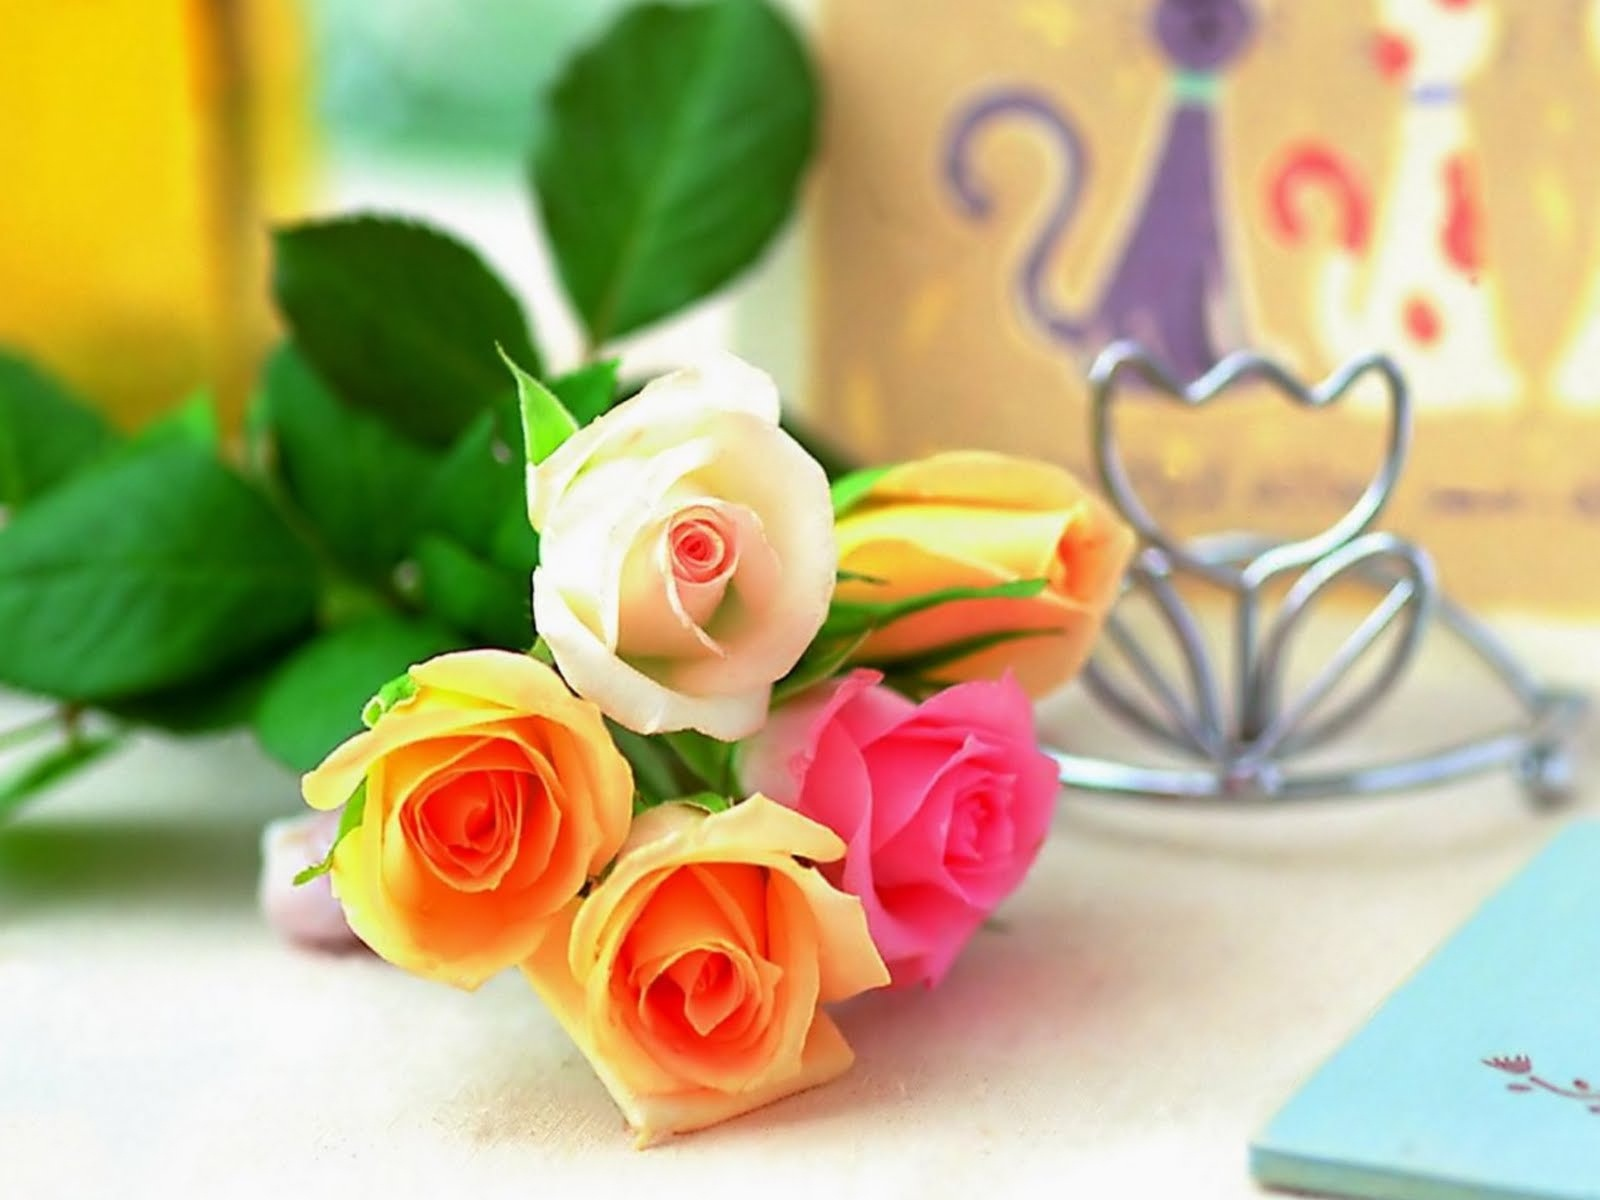 Zeeshan news most beautiful flower hd wallpaper color and different flavors of flower like redpinkyellowand etcbutt most of the people like and use red and pink most beautiful flower hd wallpaper izmirmasajfo